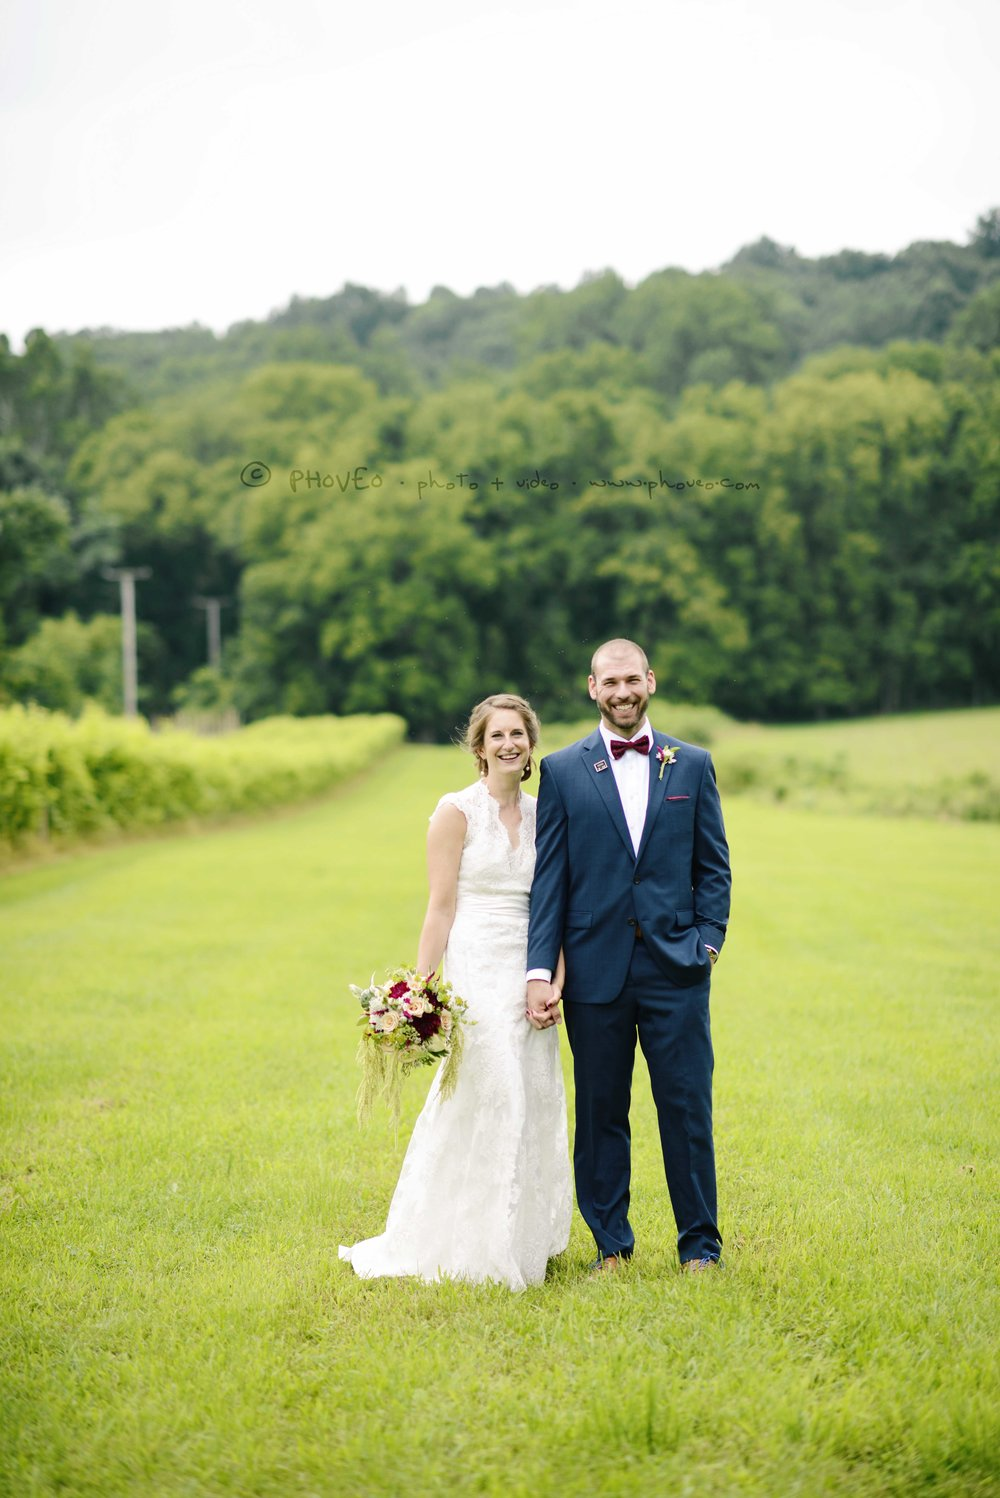 WM_20170812_Lauren+Sean_52.jpg